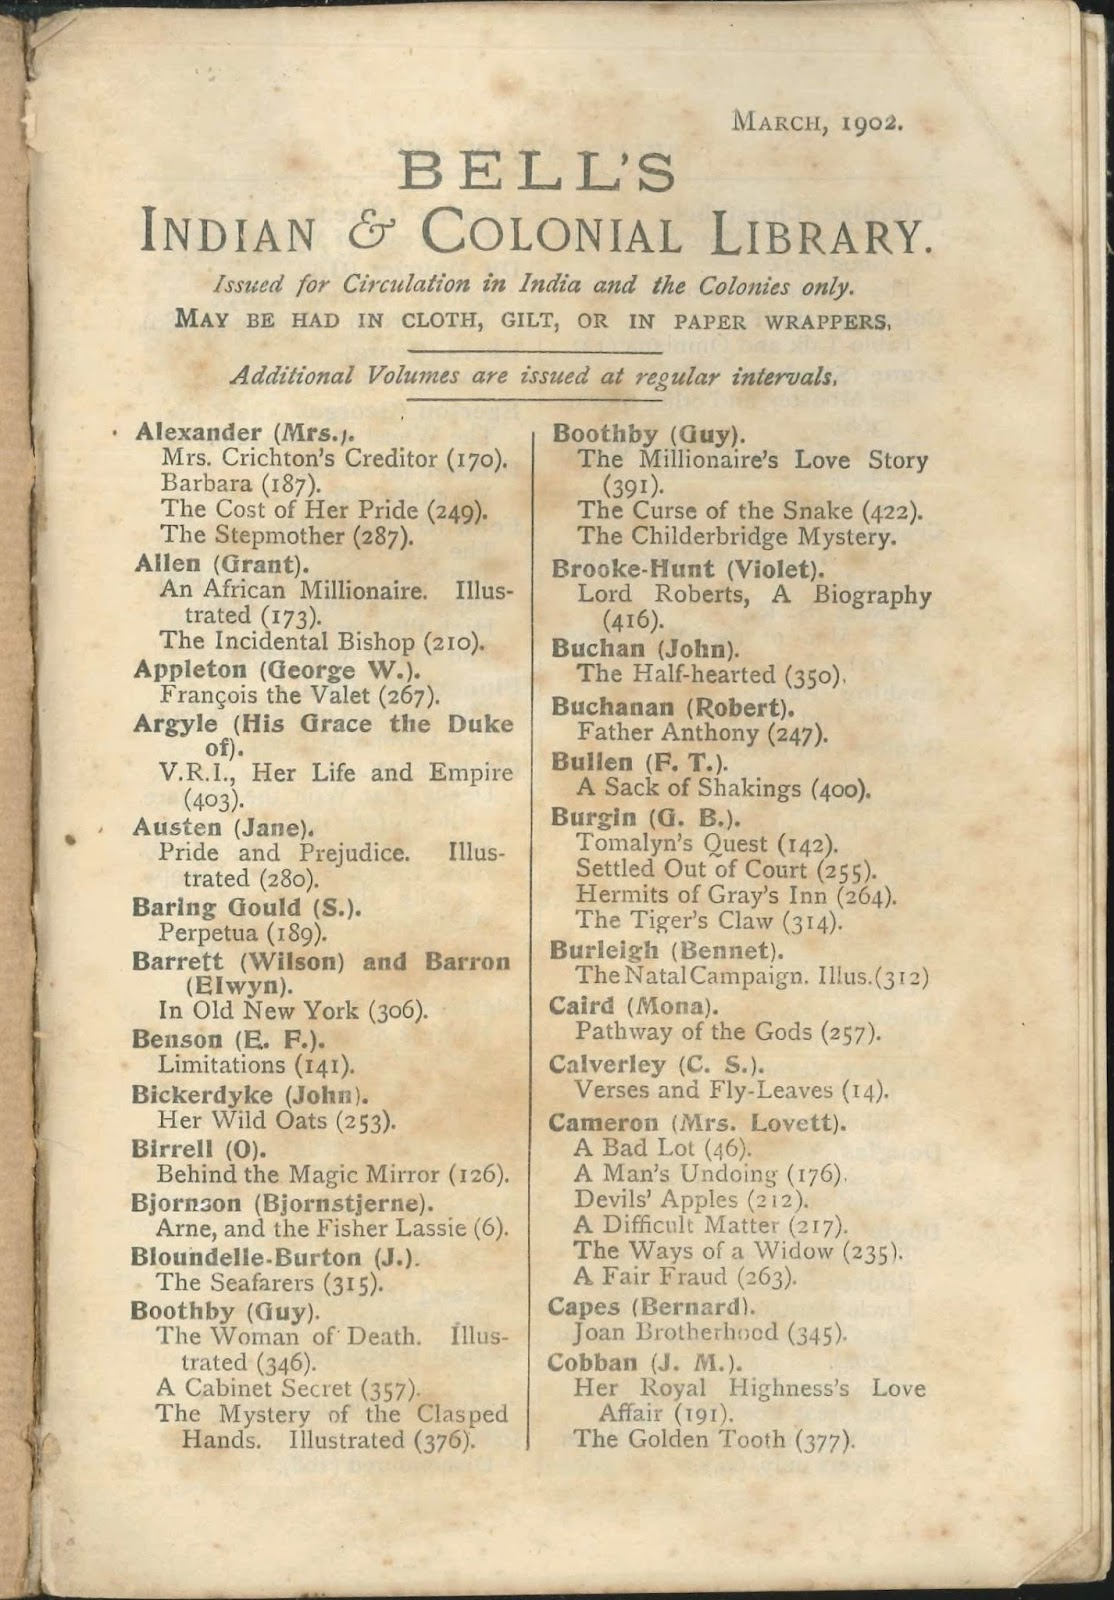 A printed list for Bell's Indian and Colonial Library.